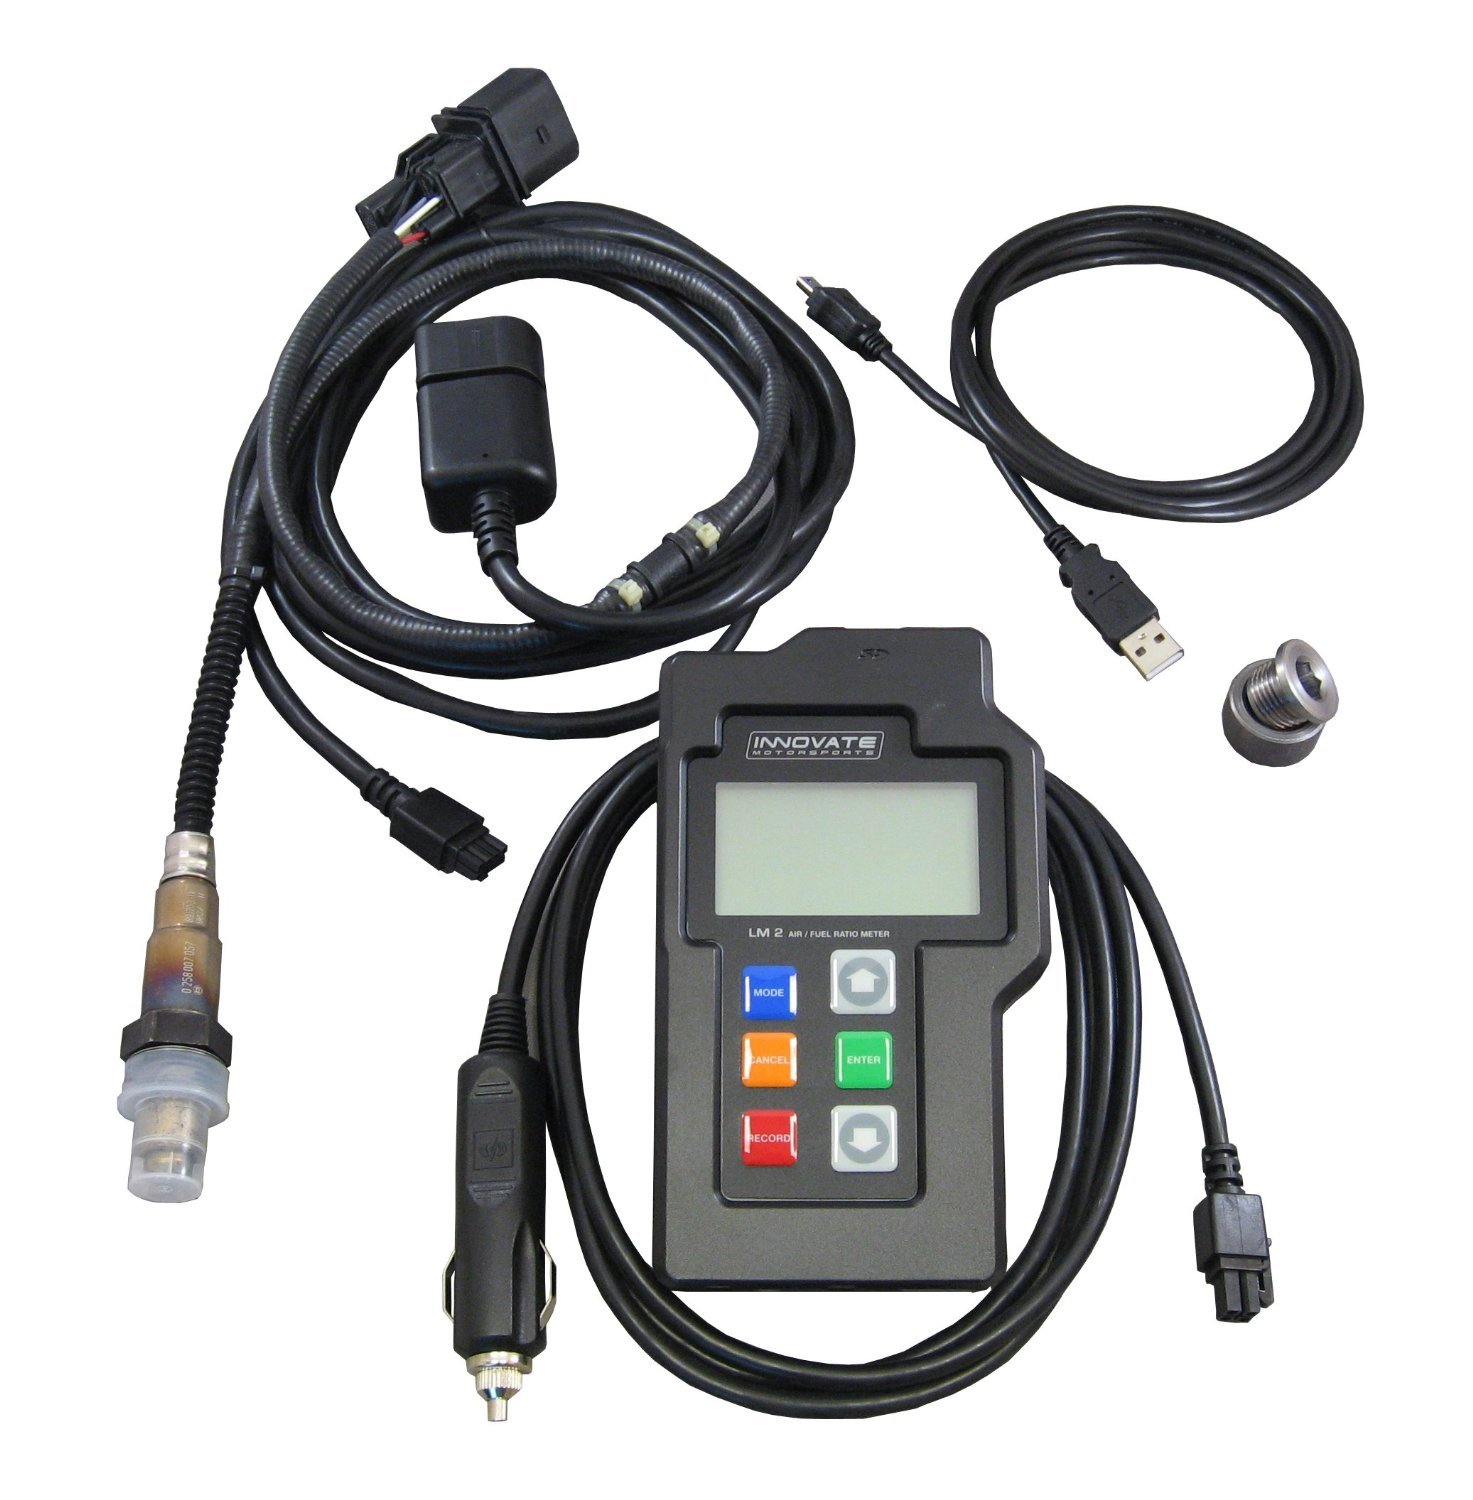 Innovate Motorsports (3837) LM-2 (BASIC) Digital Air/Fuel Ratio Wideband Meter incl. Bosch LSU 4.9